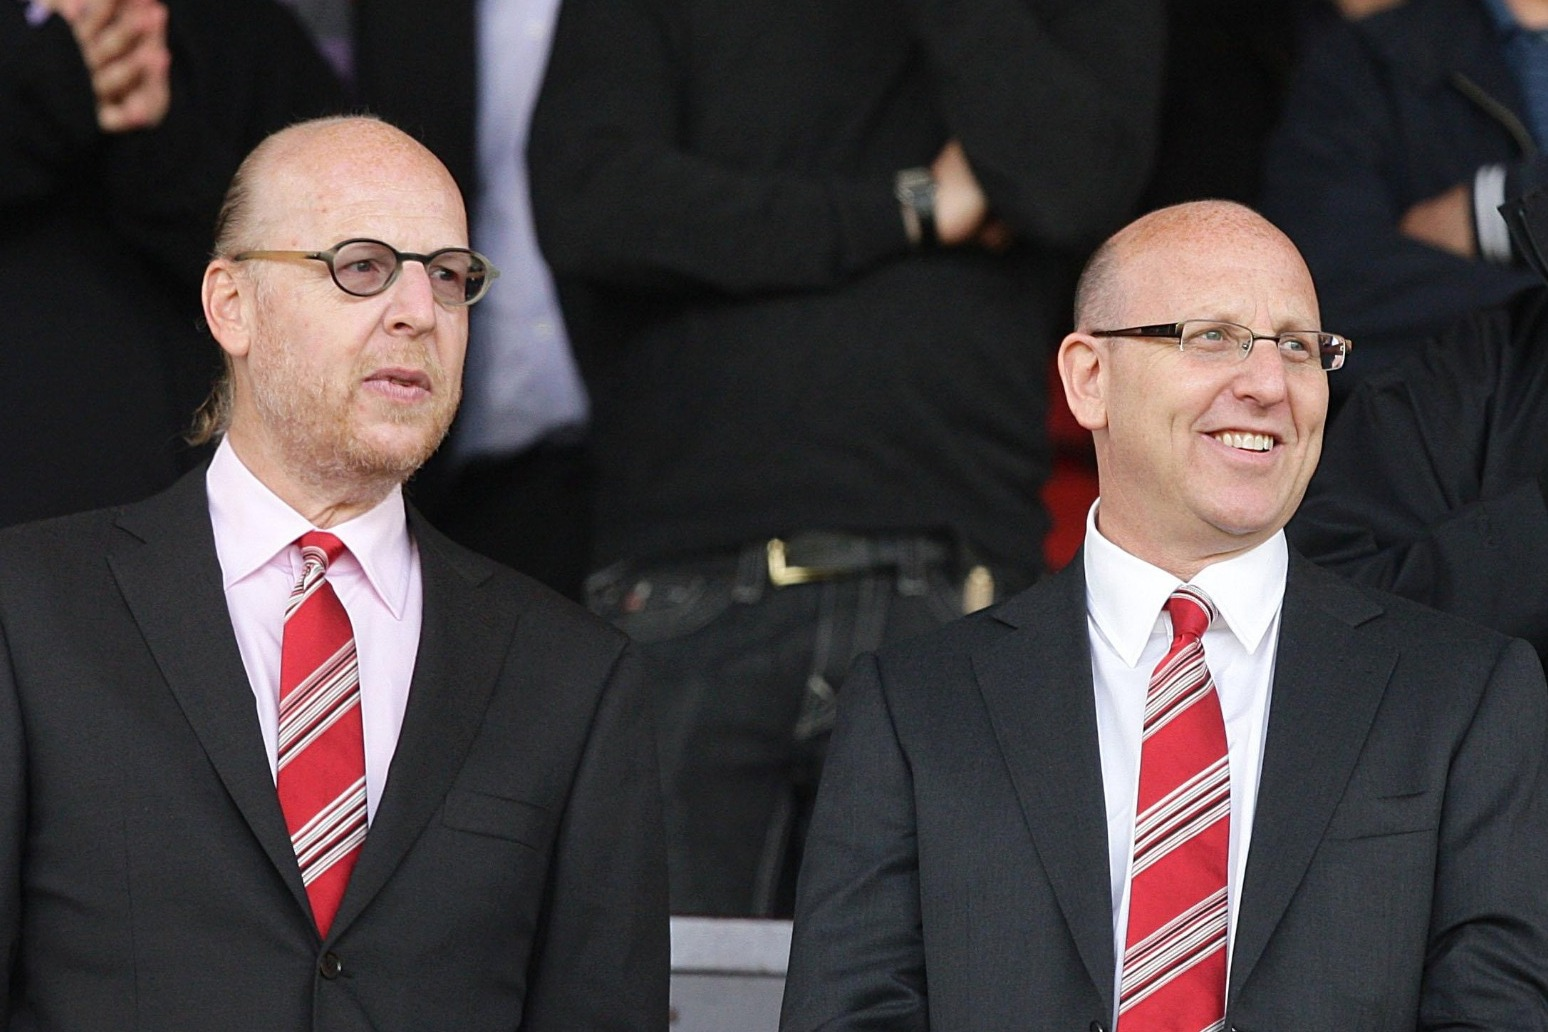 Manchester United co chairman Joel Glazer vows to improve communication with fans